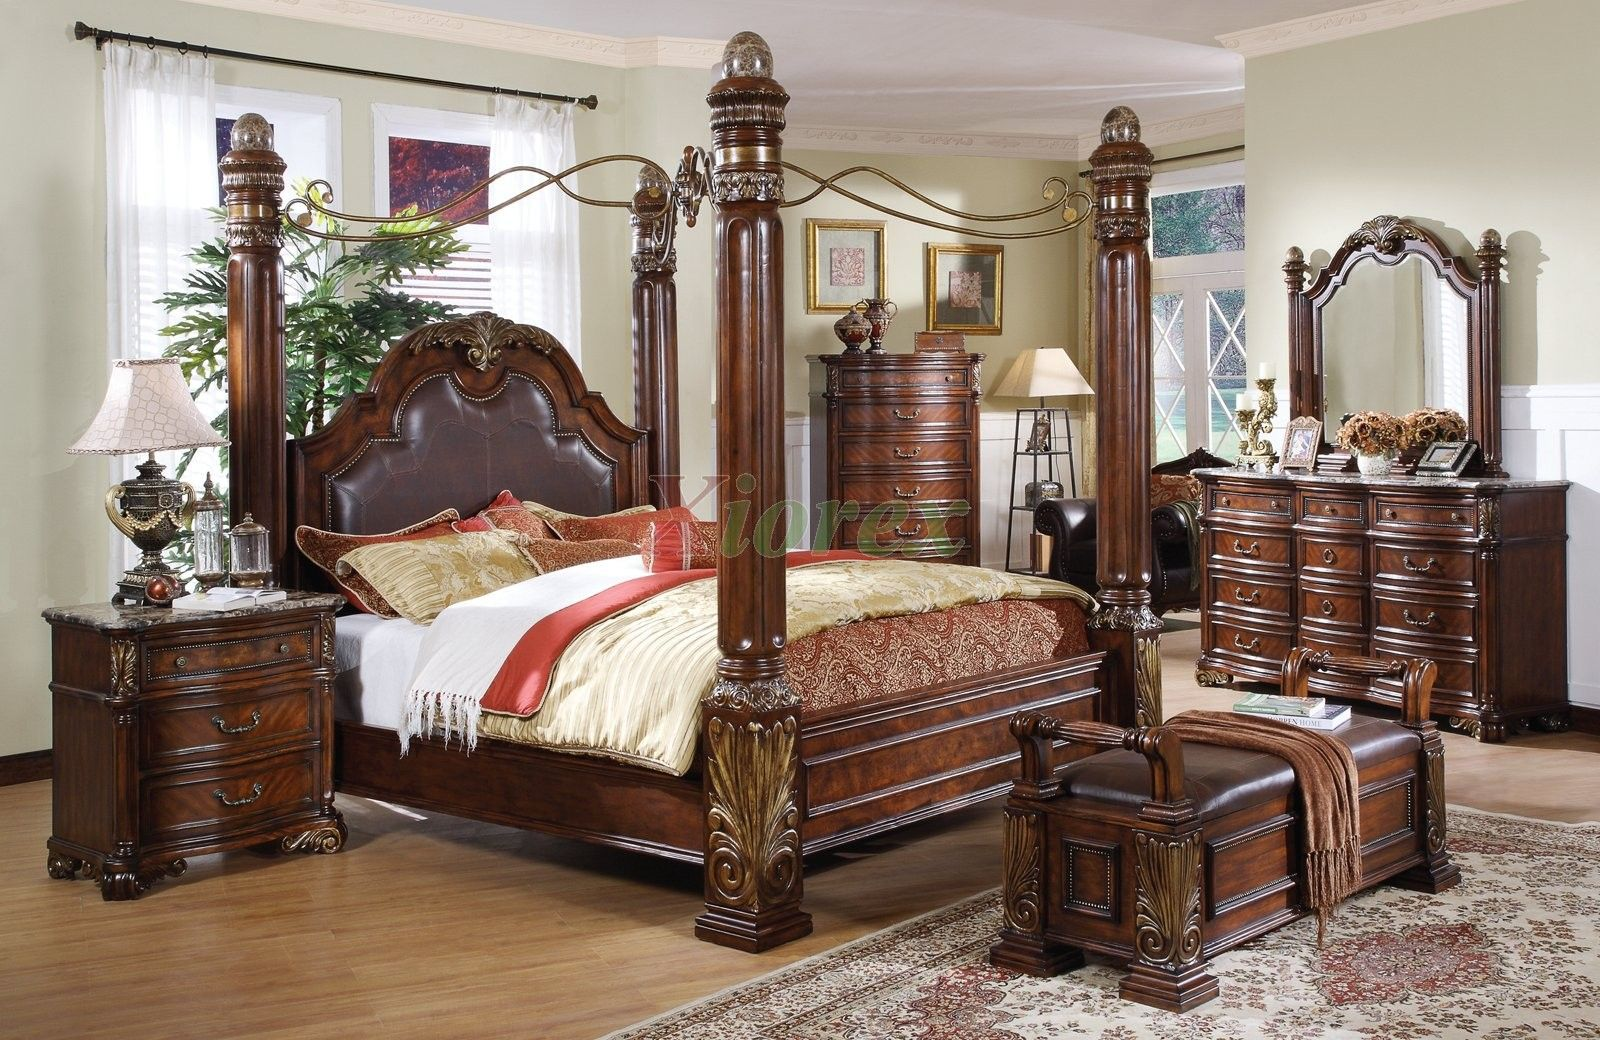 Quality Bedroom Sofa Fabulous Quality Bedroom Furniture 16 For